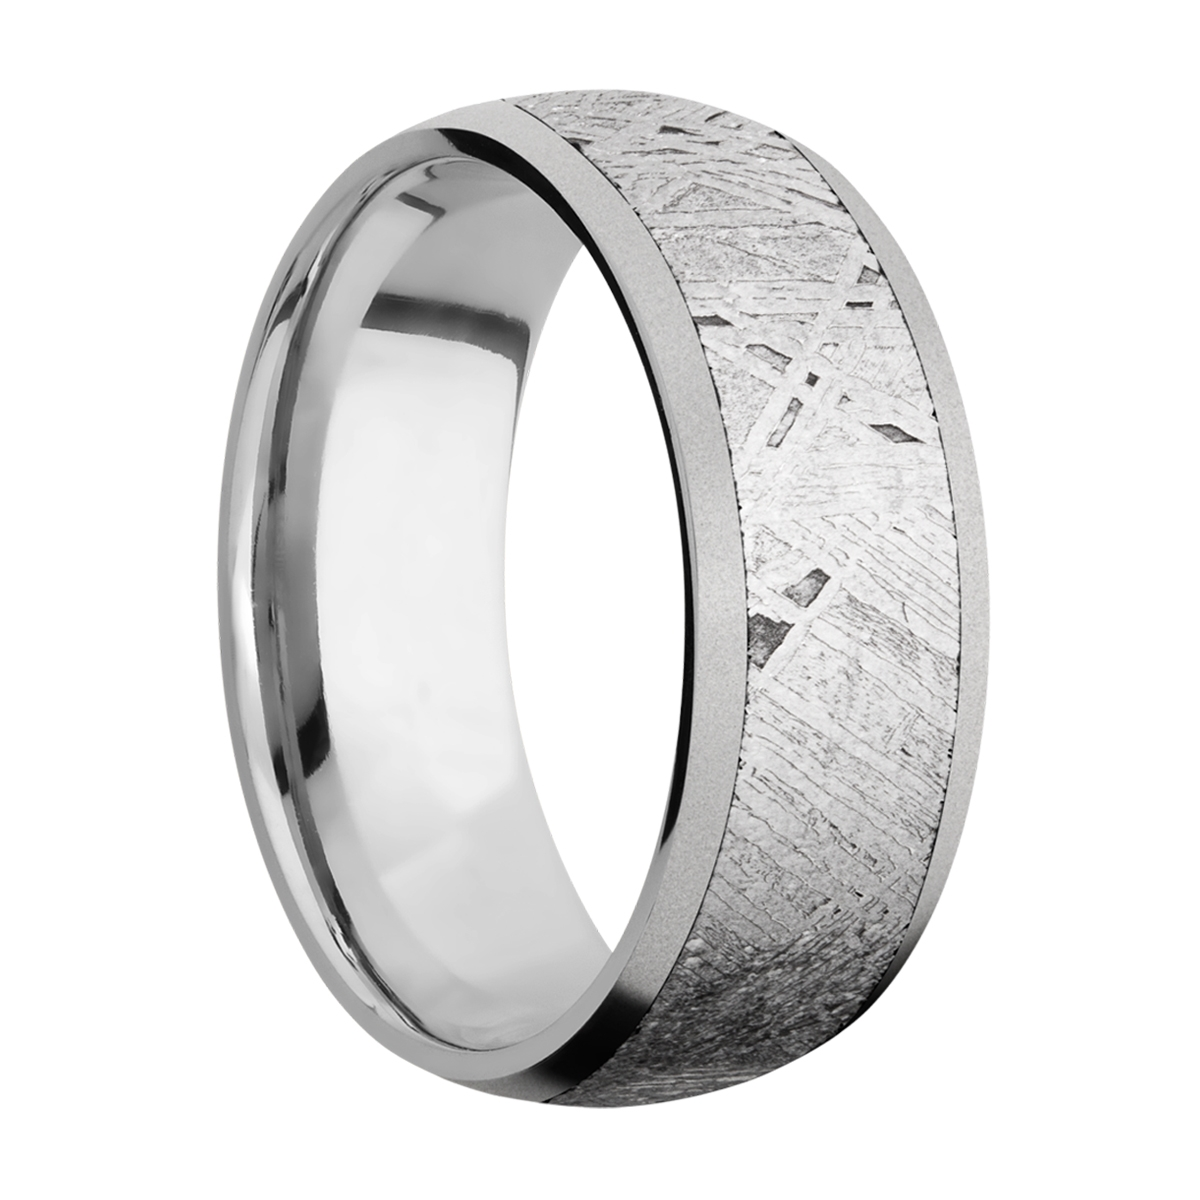 Lashbrook 8D16/METEORITE Titanium Wedding Ring or Band Alternative View 1